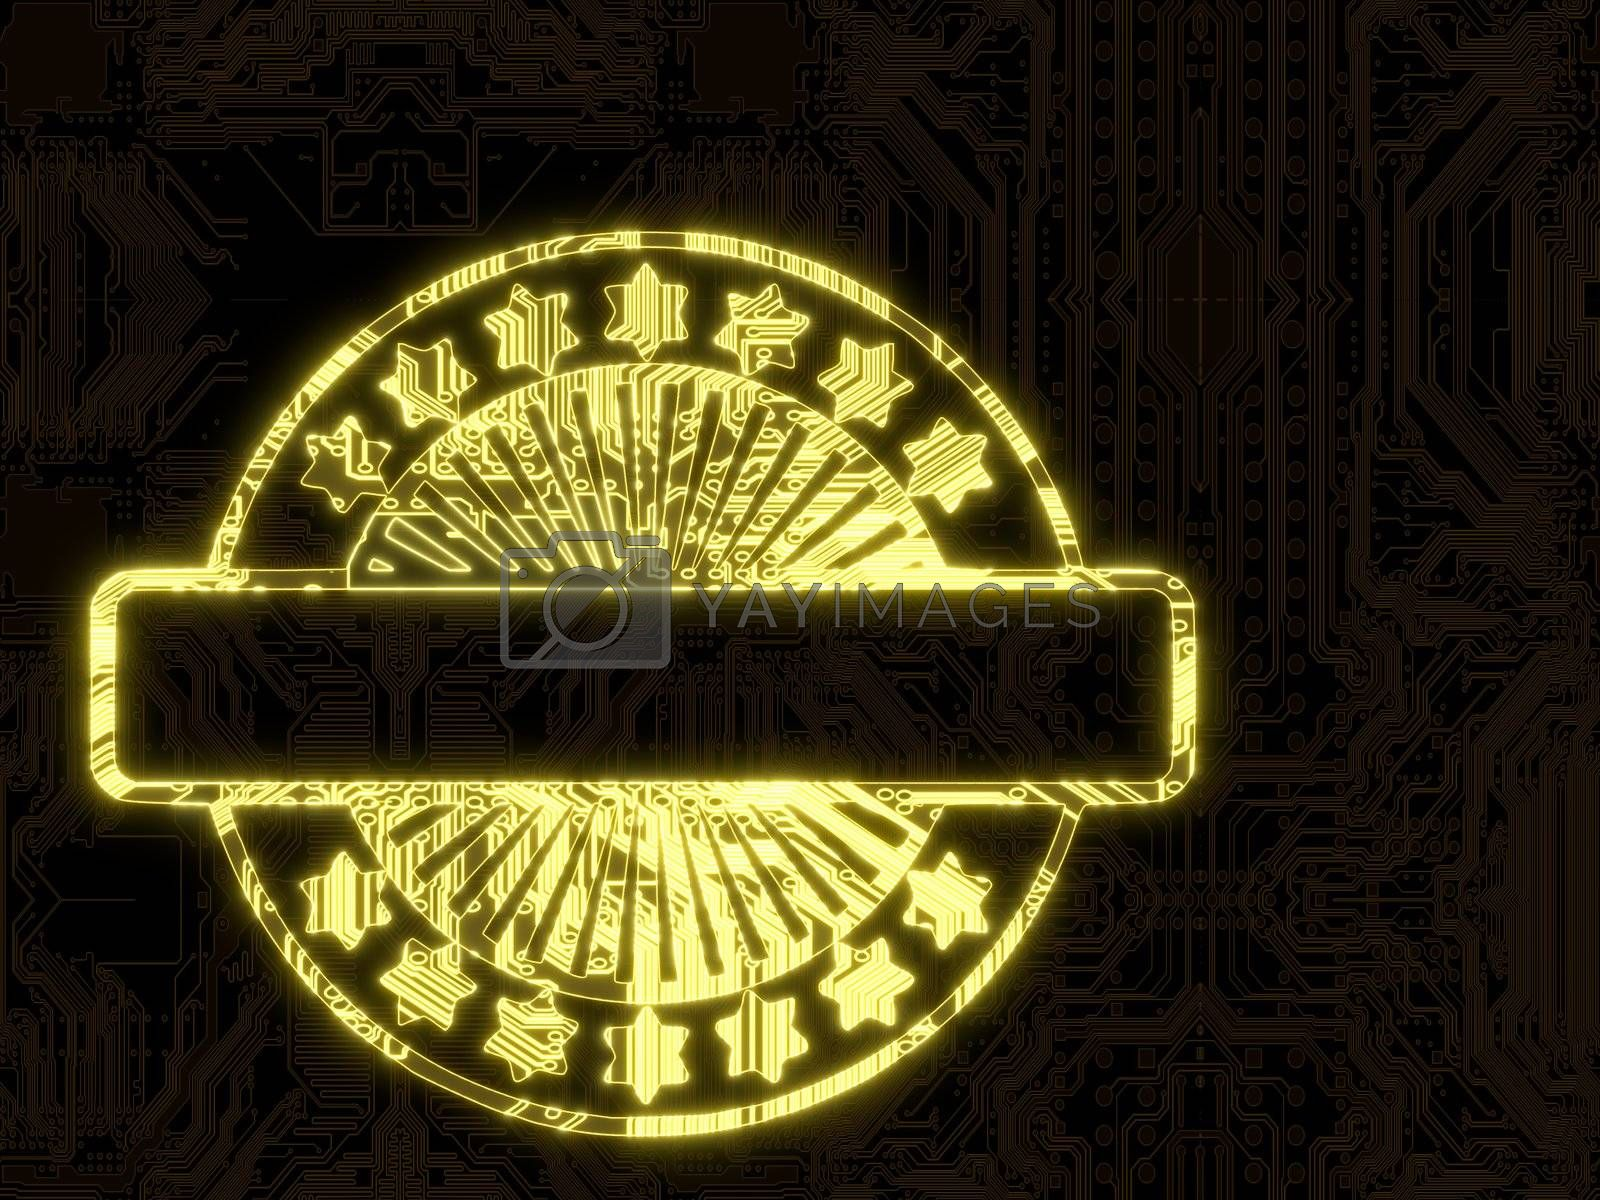 3d graphic flare with glowing label symbol in a dark background on a computer chip